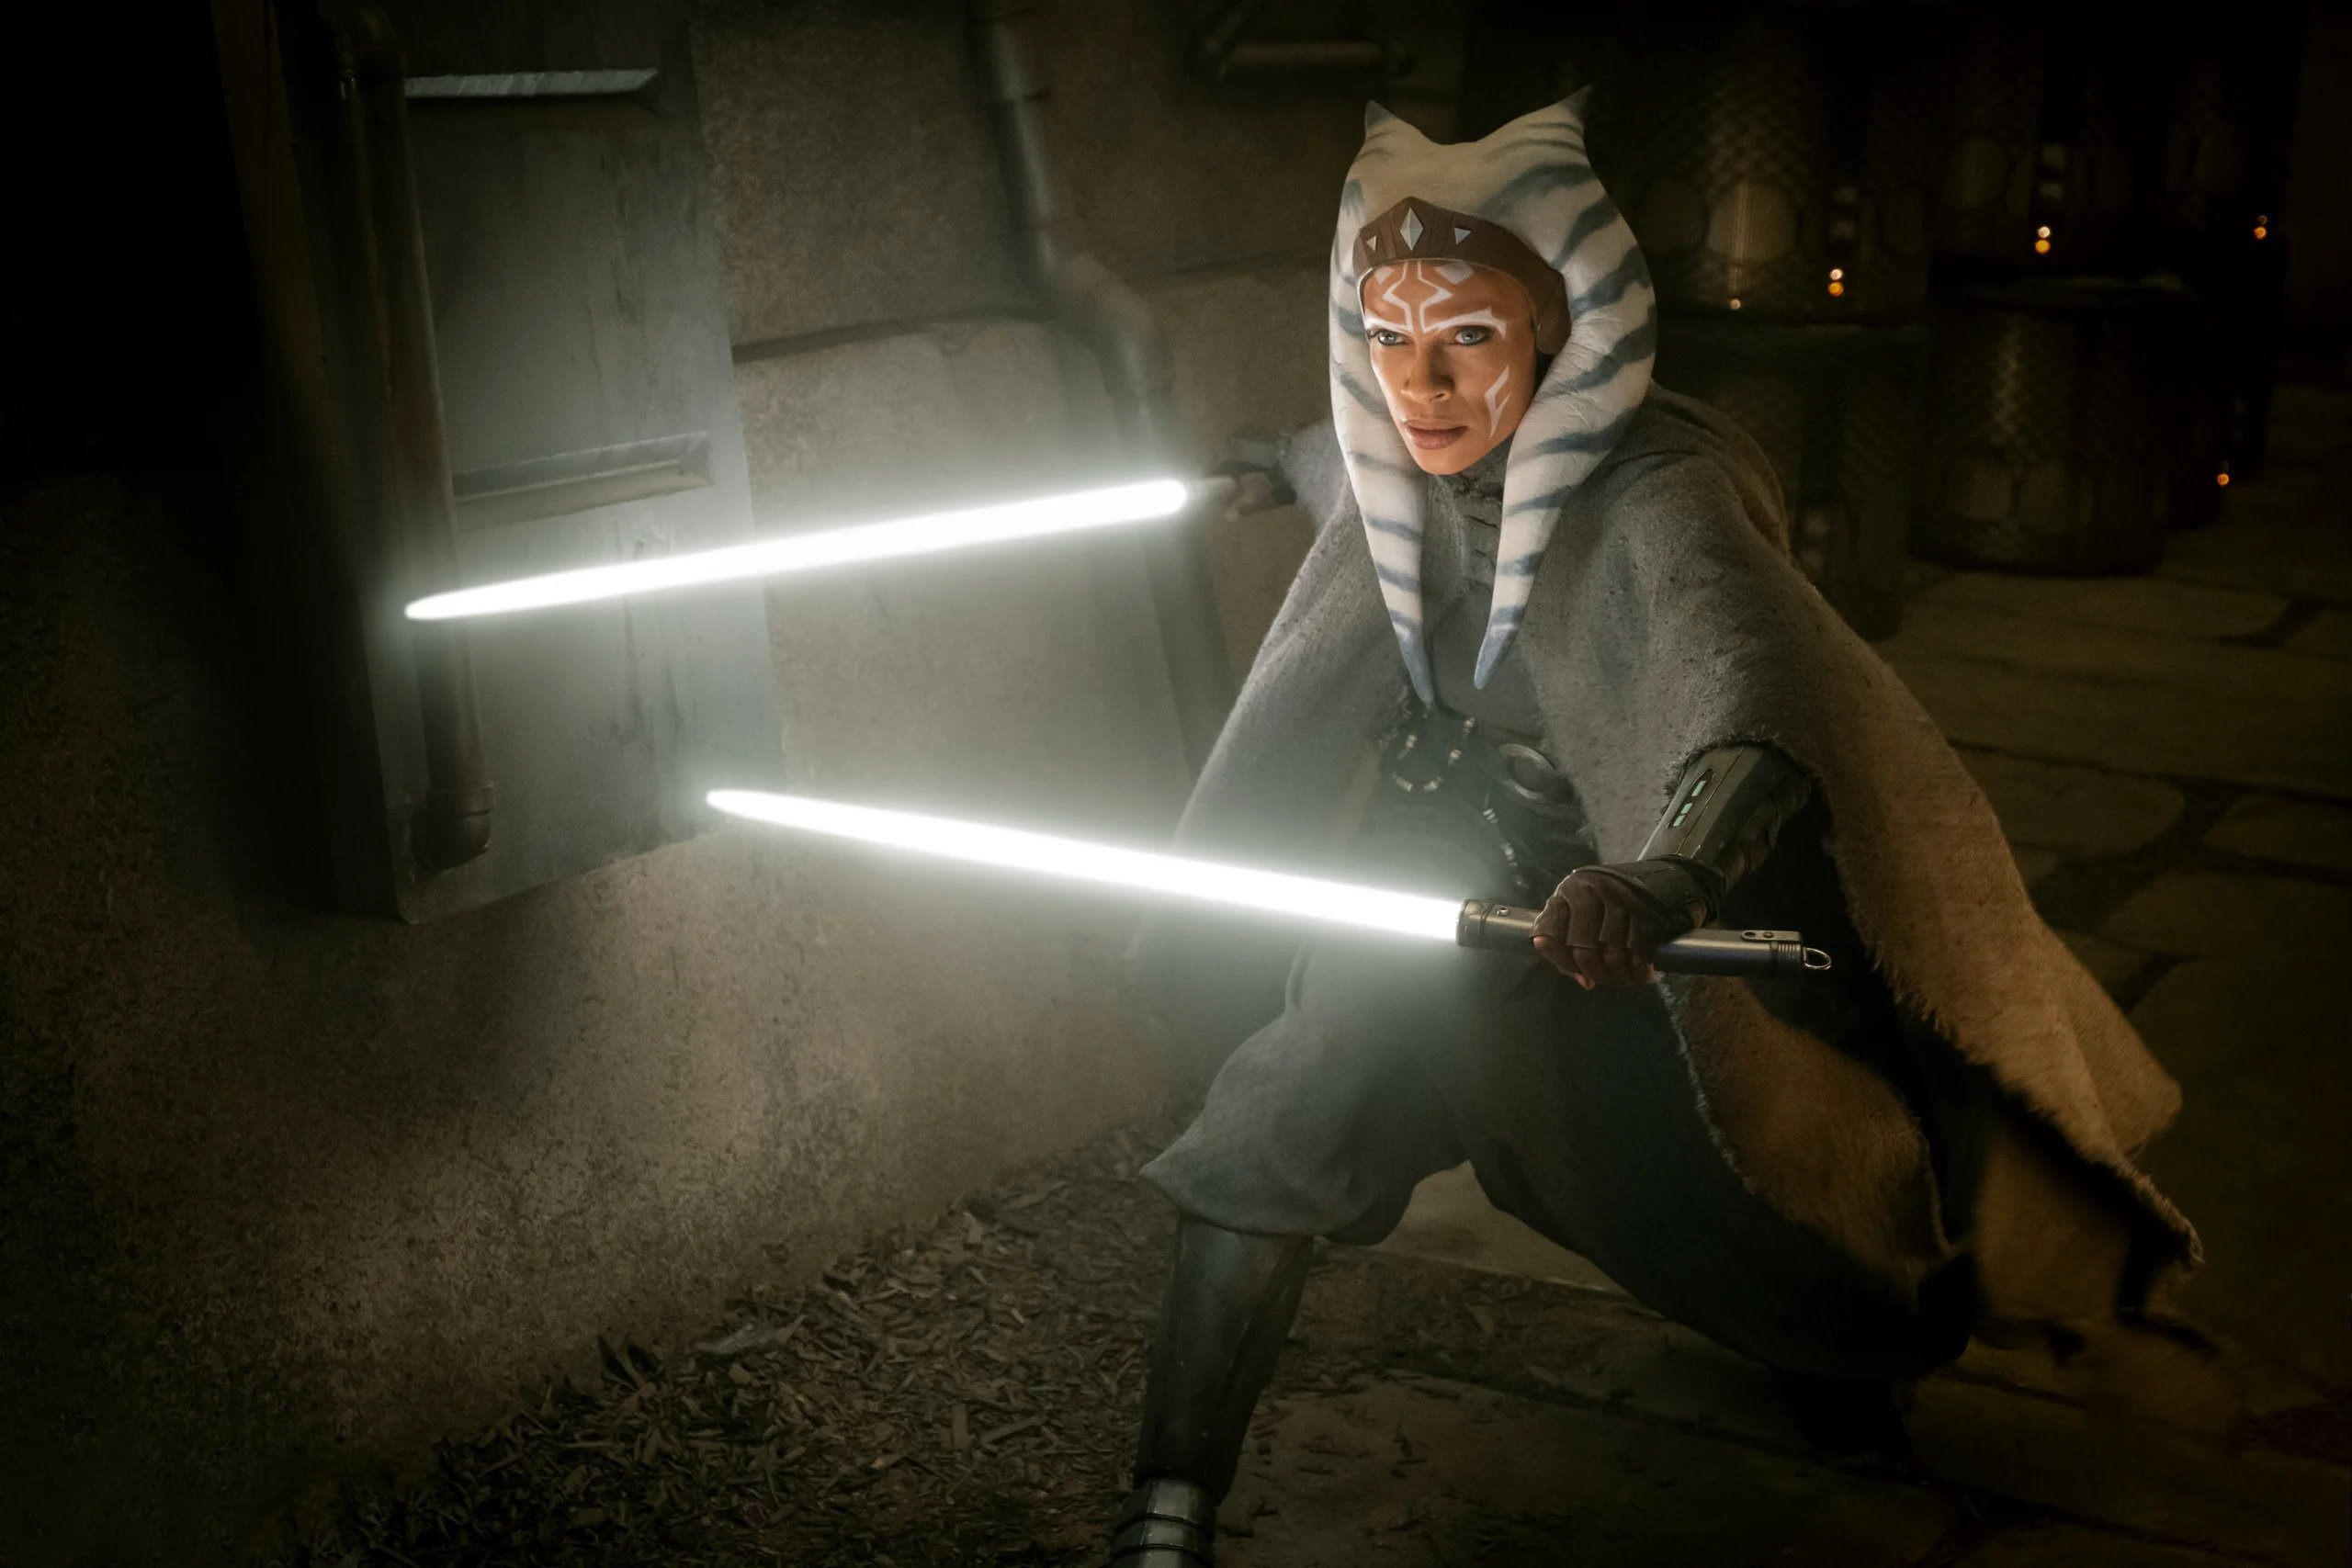 Rosario Dawson as Ahsoka Tano in The Mandalorian